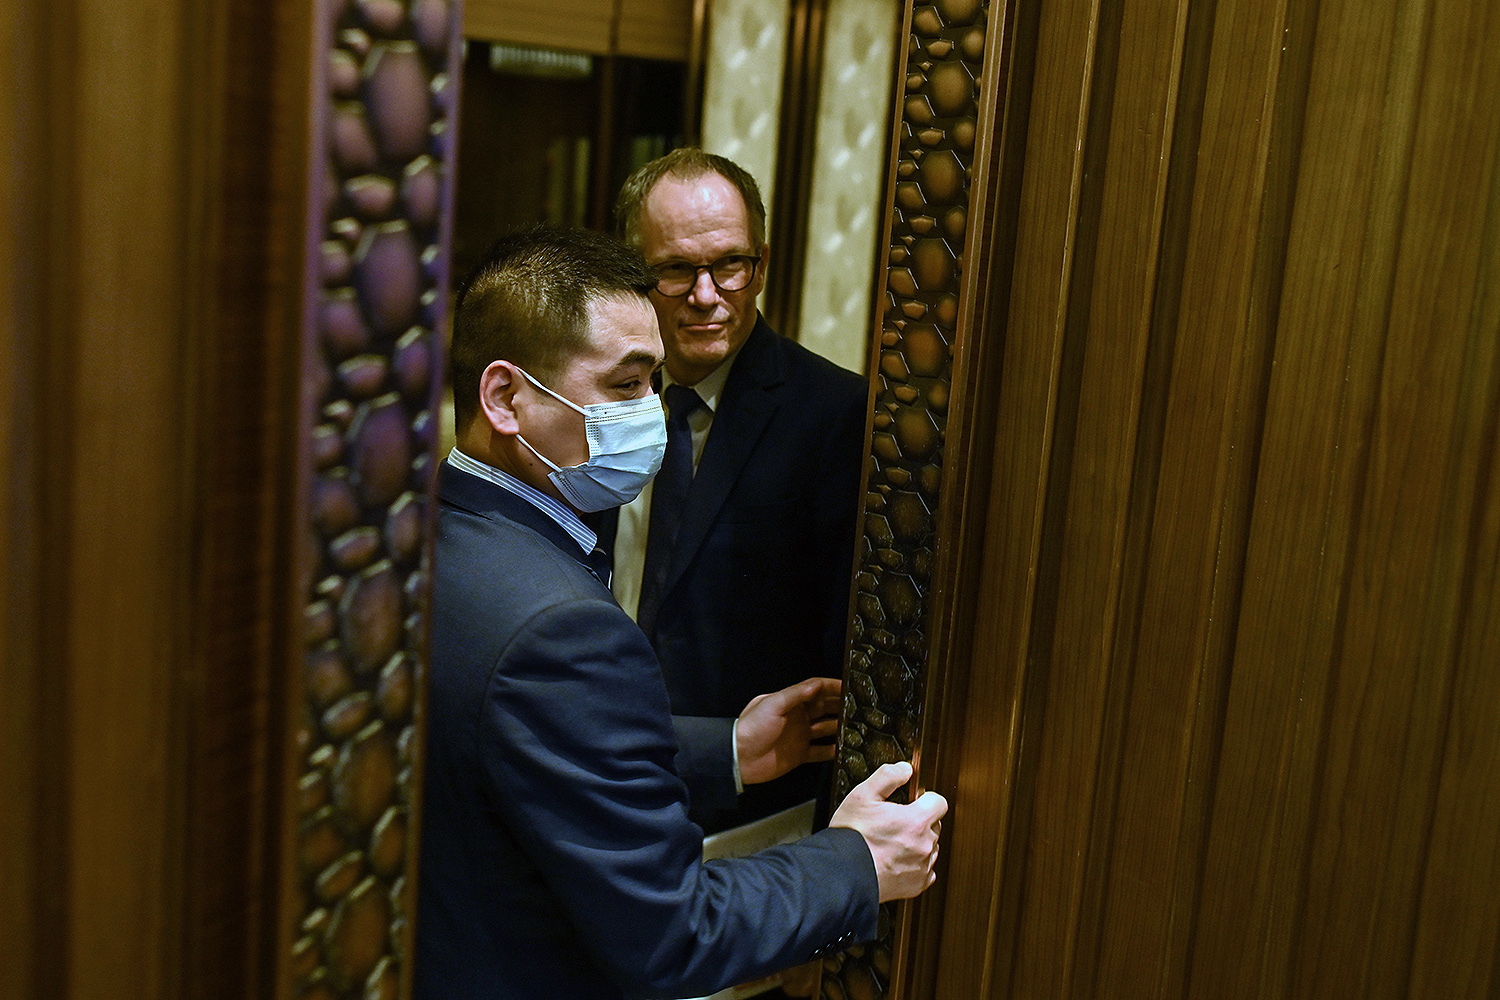 Peter Ben Embarek (right) leaves a press conference after wrapping up a visit by the international team of experts from the World Health Organization in Wuhan, China, on Feb. 9.